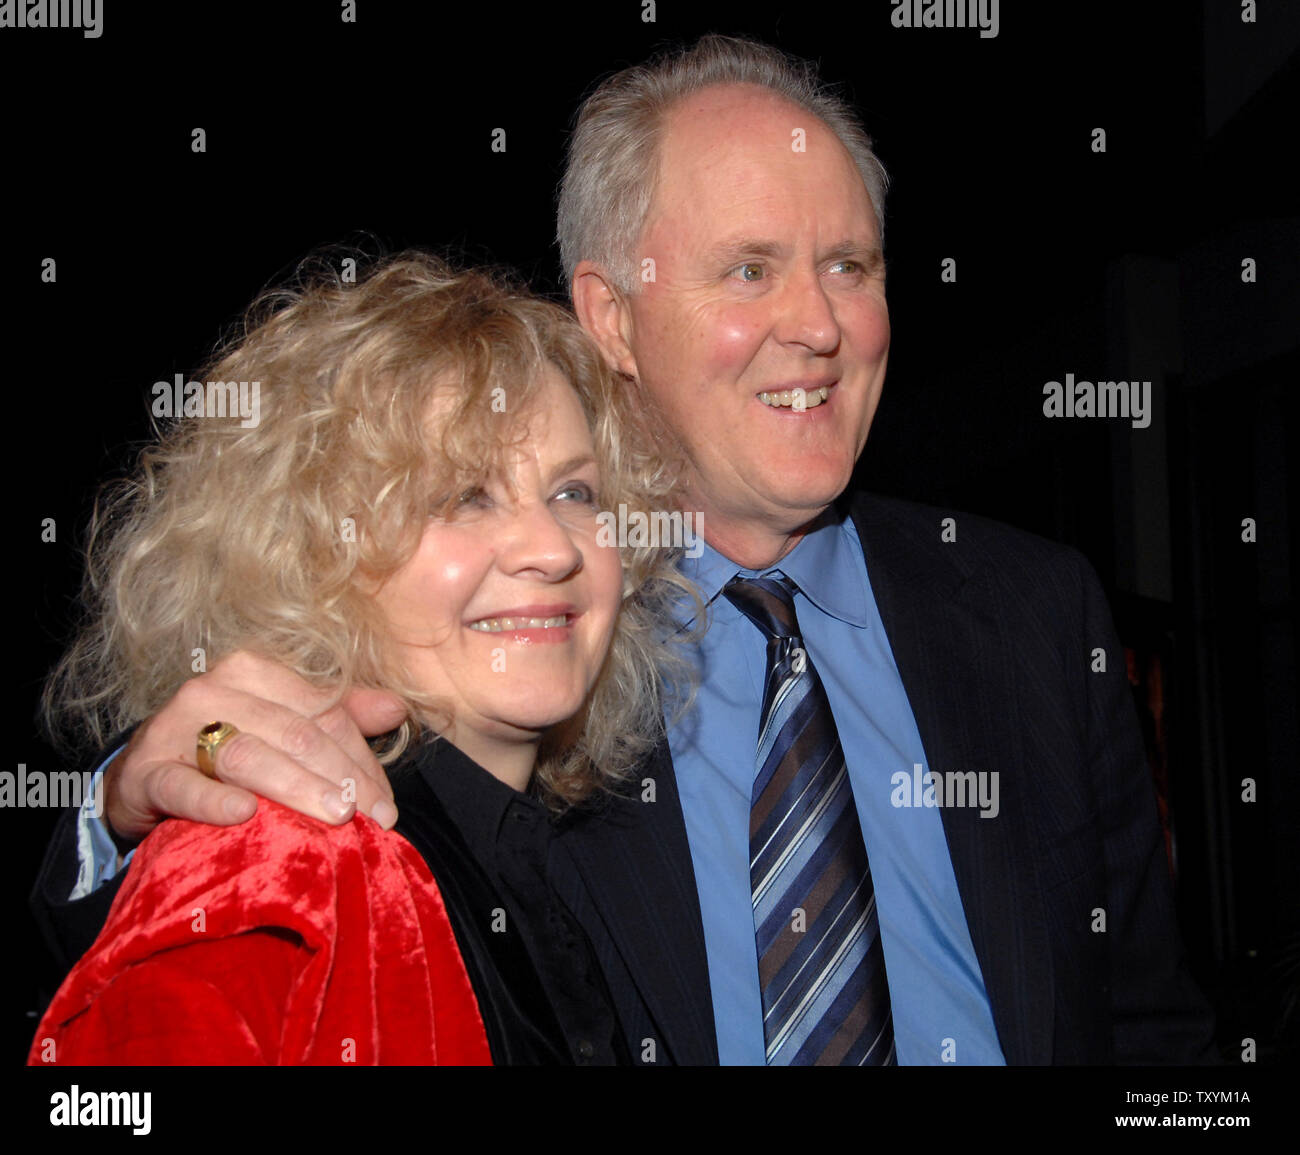 John Lithgow (R), a cast member in the motion picture